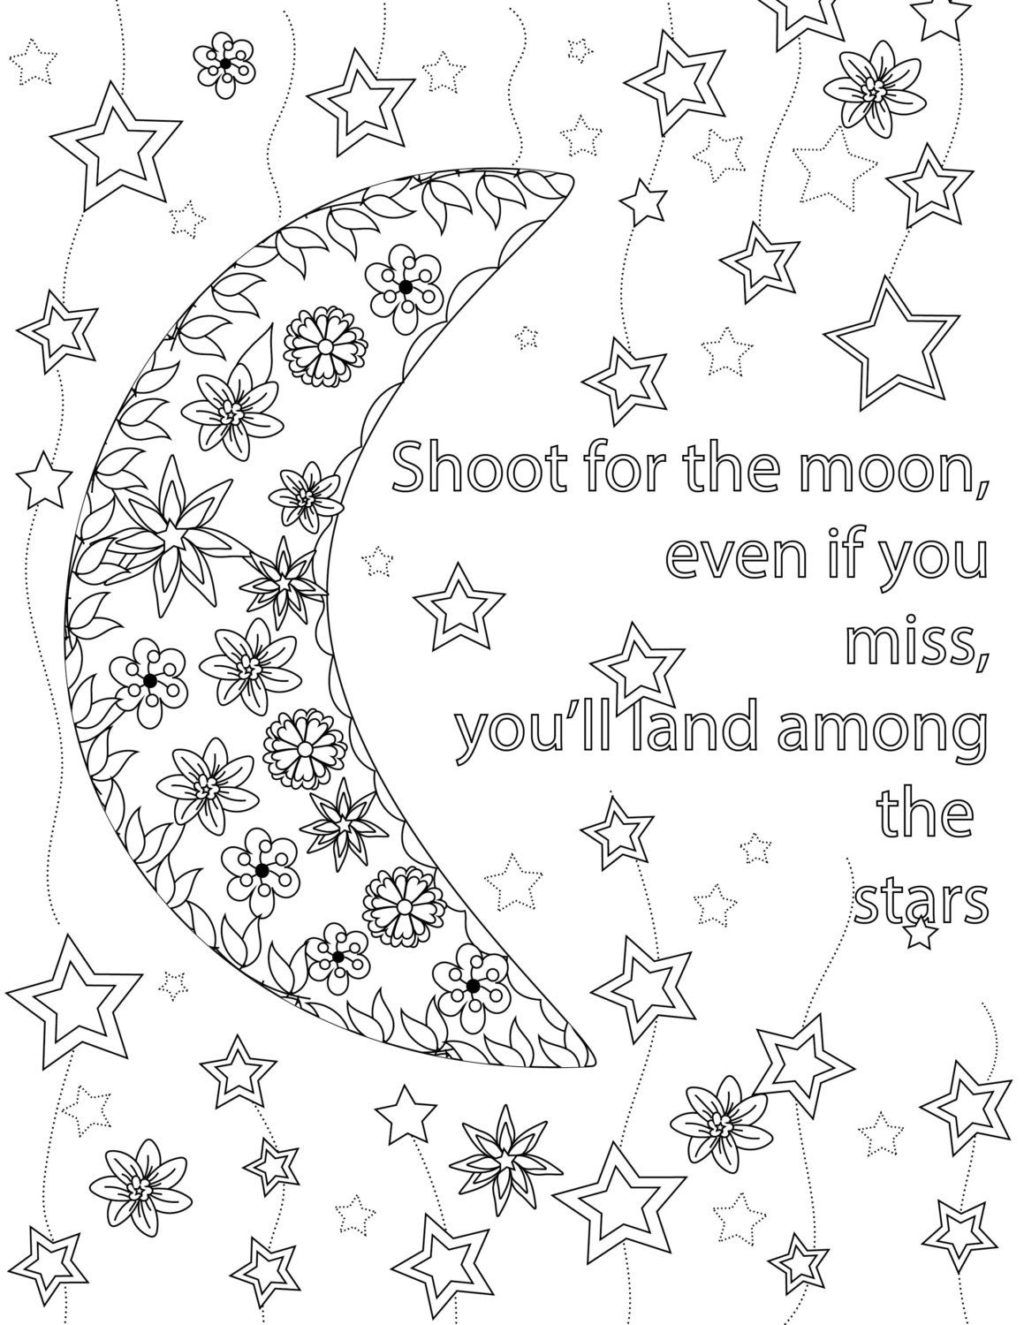 Coloring Book World Inspiring Quotes Coloring Pagesintable Relax Quote Coloring Pages Coloring Pages Inspirational Cute Coloring Pages